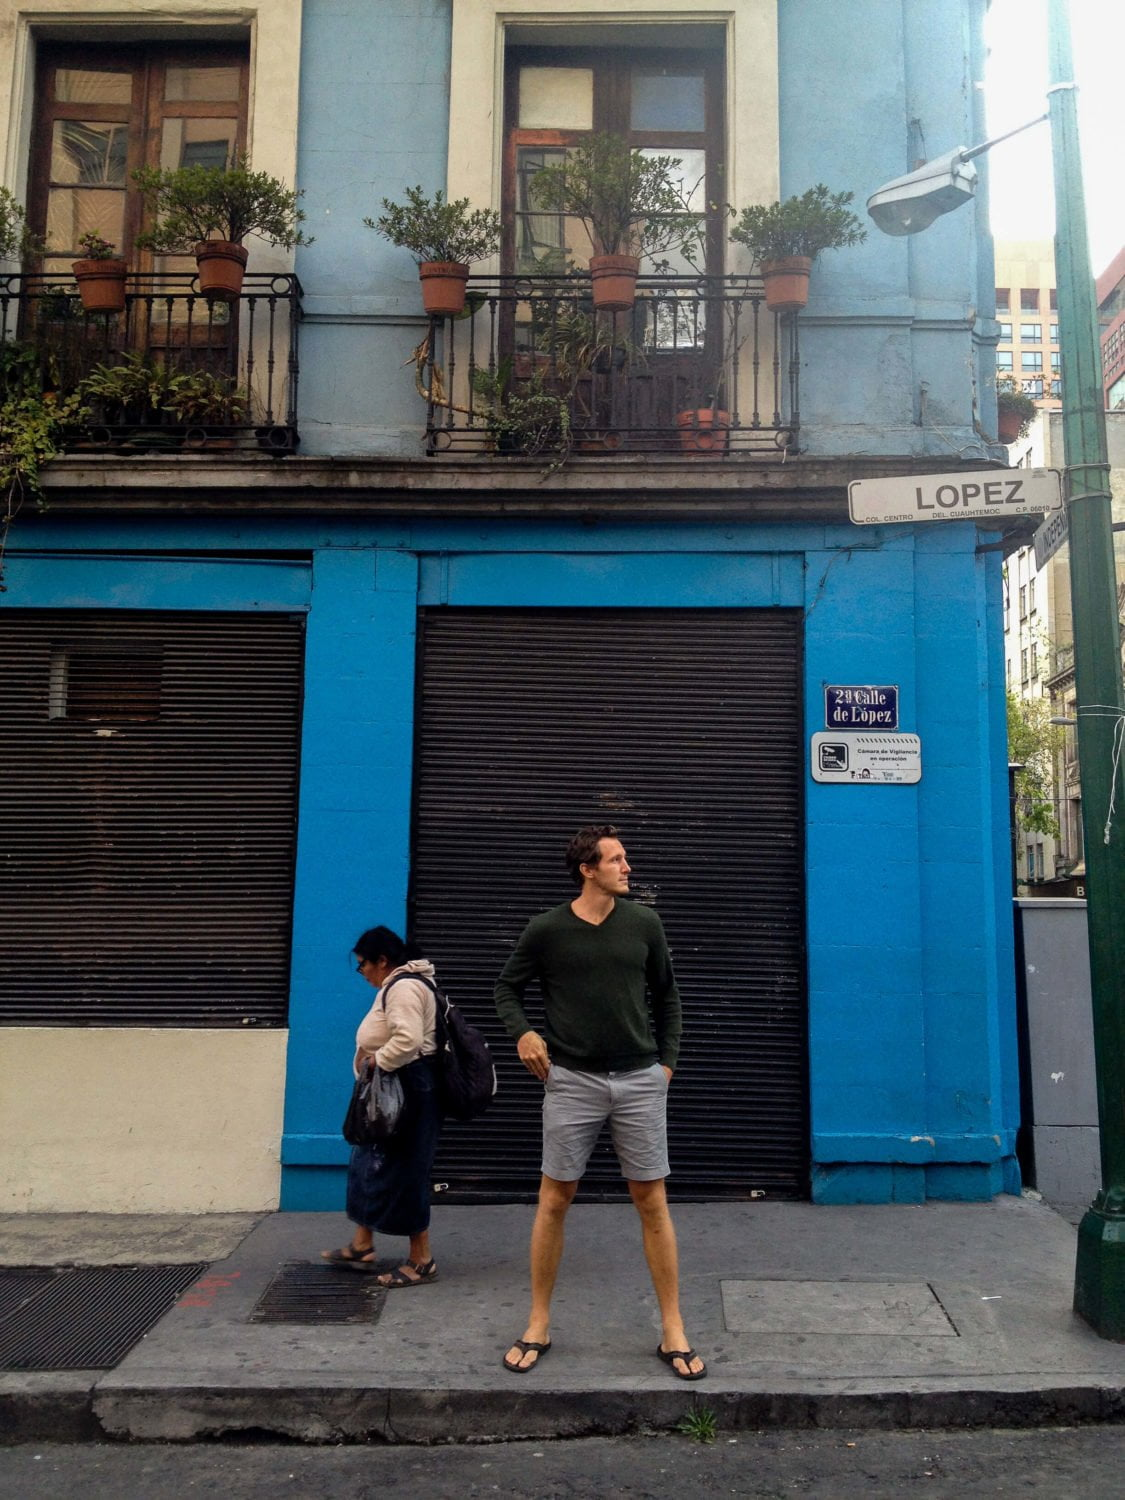 chris standing in front of blue building wearing shorts and sandals mexico city